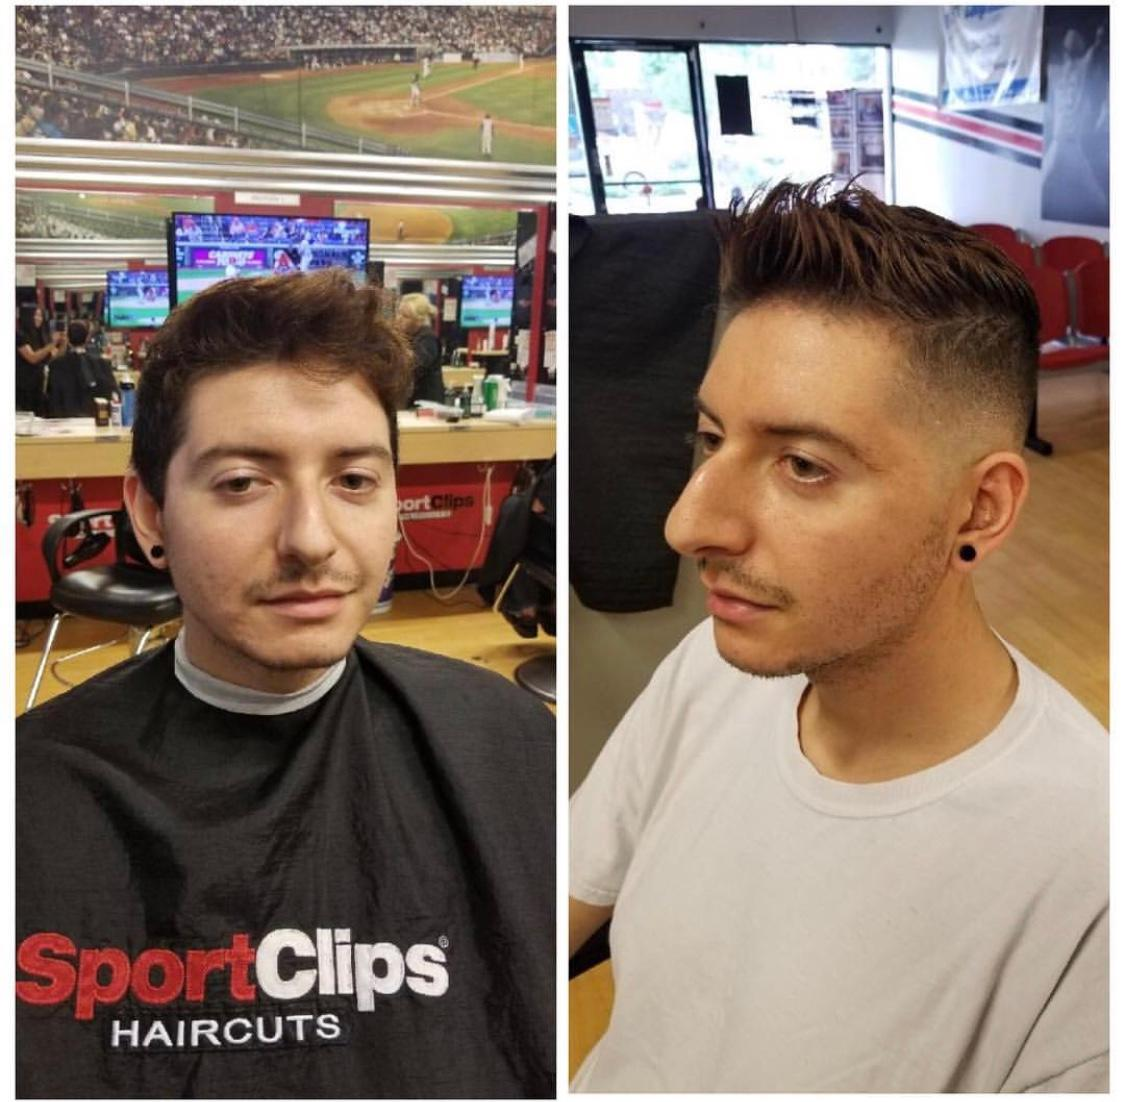 Sport Clips Haircuts of New Port Richey image 19